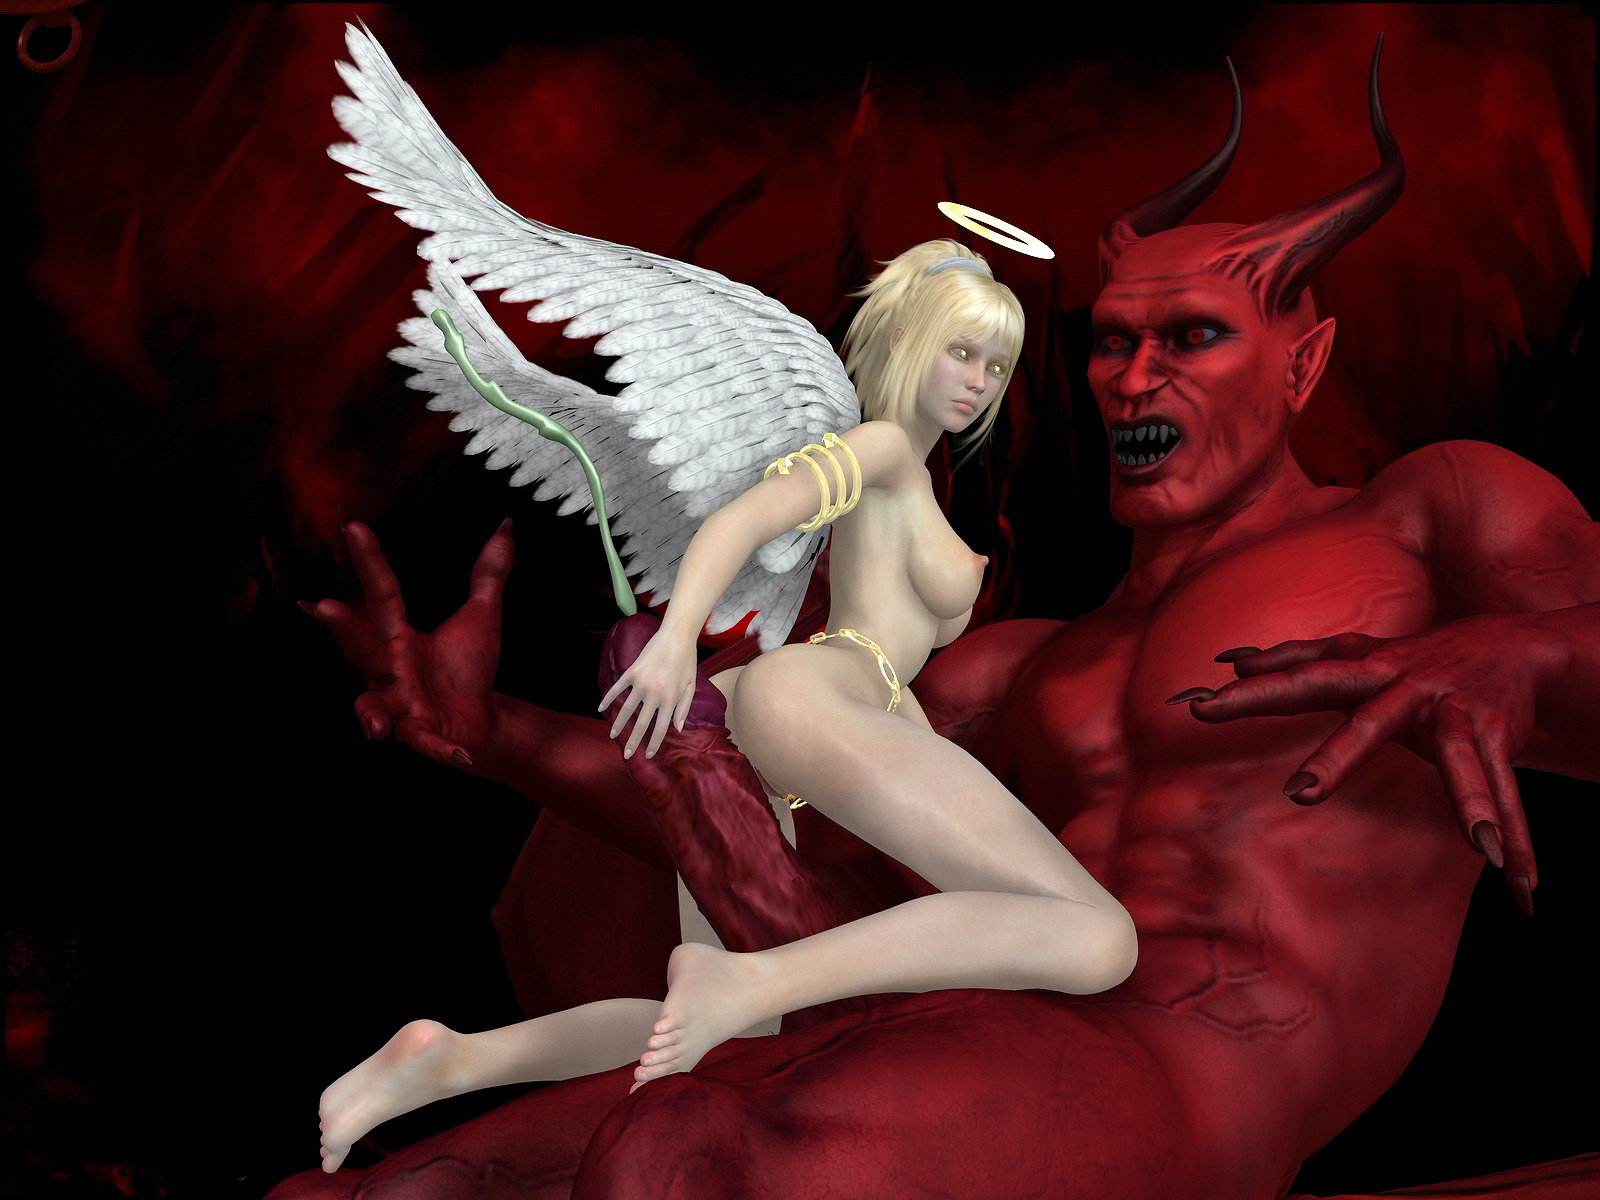 Demons and angels nude porn tube